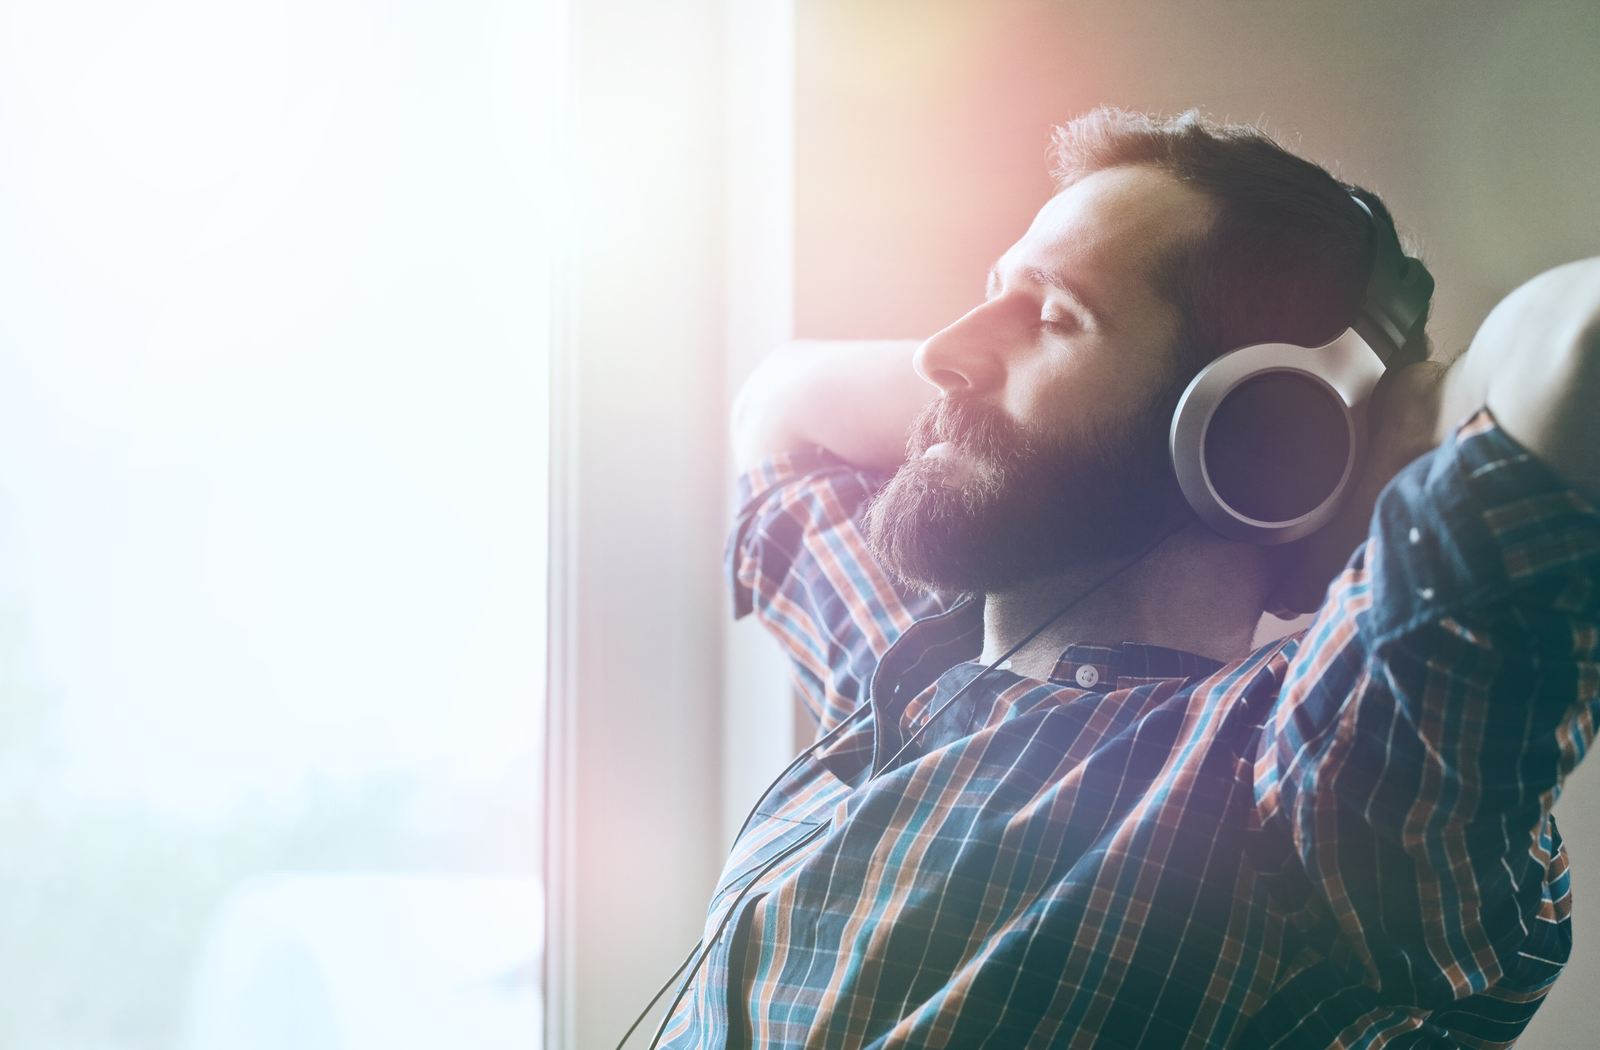 bearded man in a plaid shirt listening to music with headphones